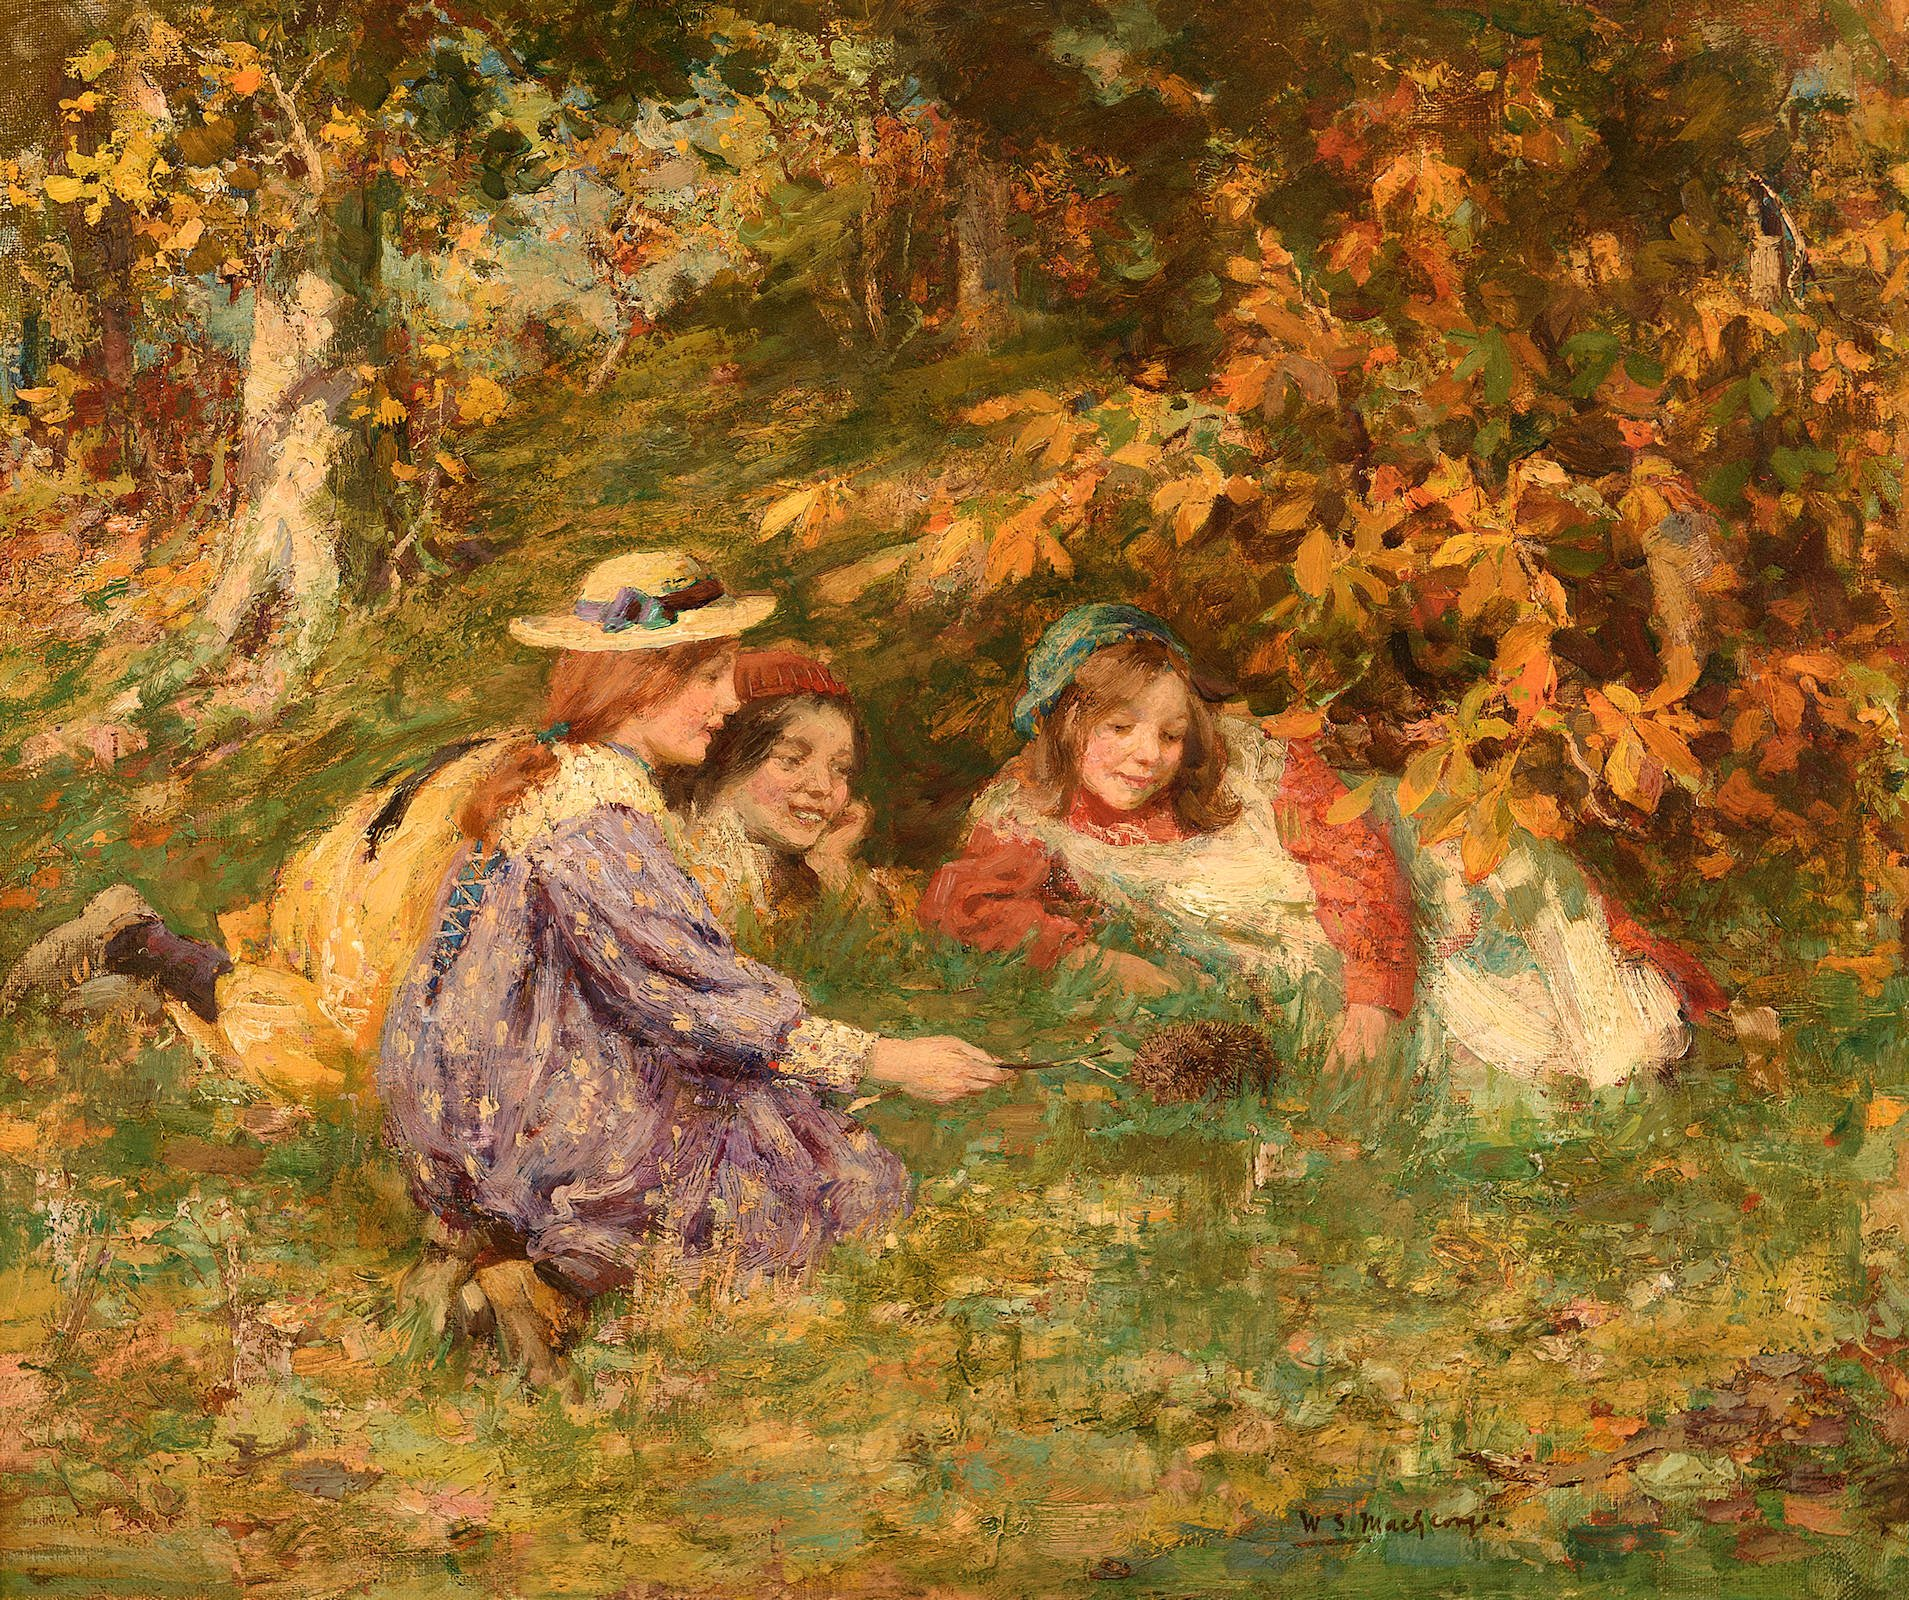 three young girls in woodland by hedgehog in the grass